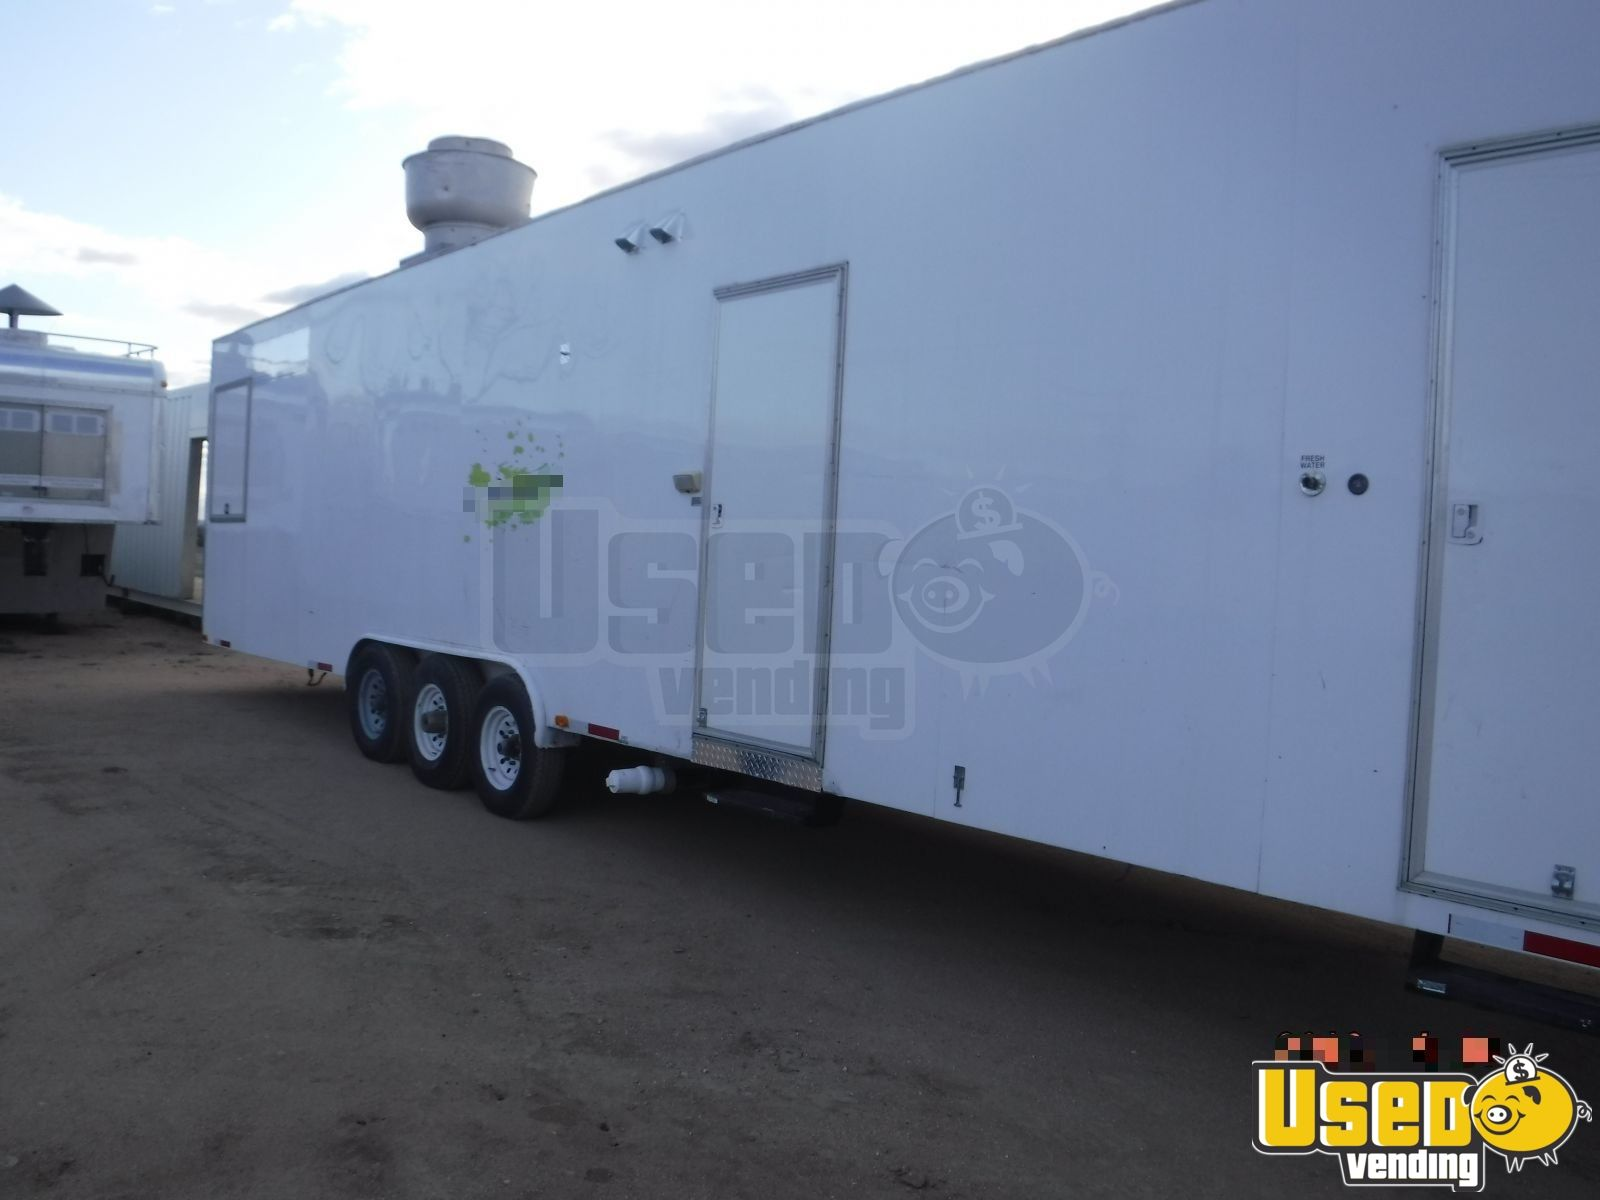 2009 Universal Magnum By California Cart Builder All-purpose Food Trailer Air Conditioning Colorado for Sale - 2